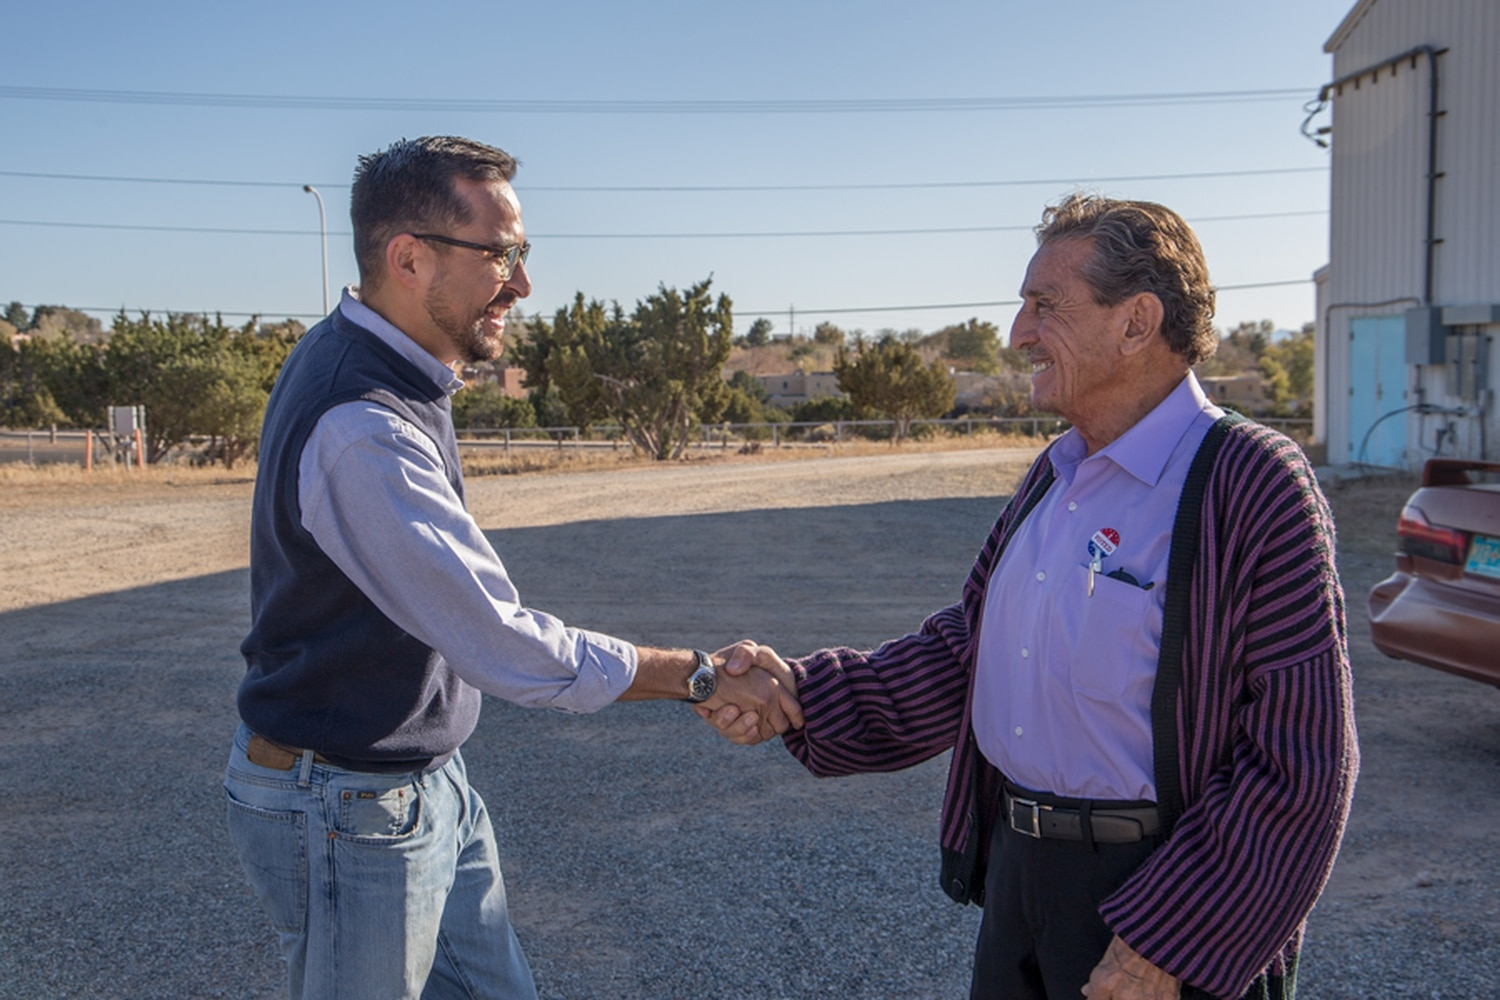 Michael Garcia, who appears to have won the race for District 2, shakes hands with voterTony Lopez.